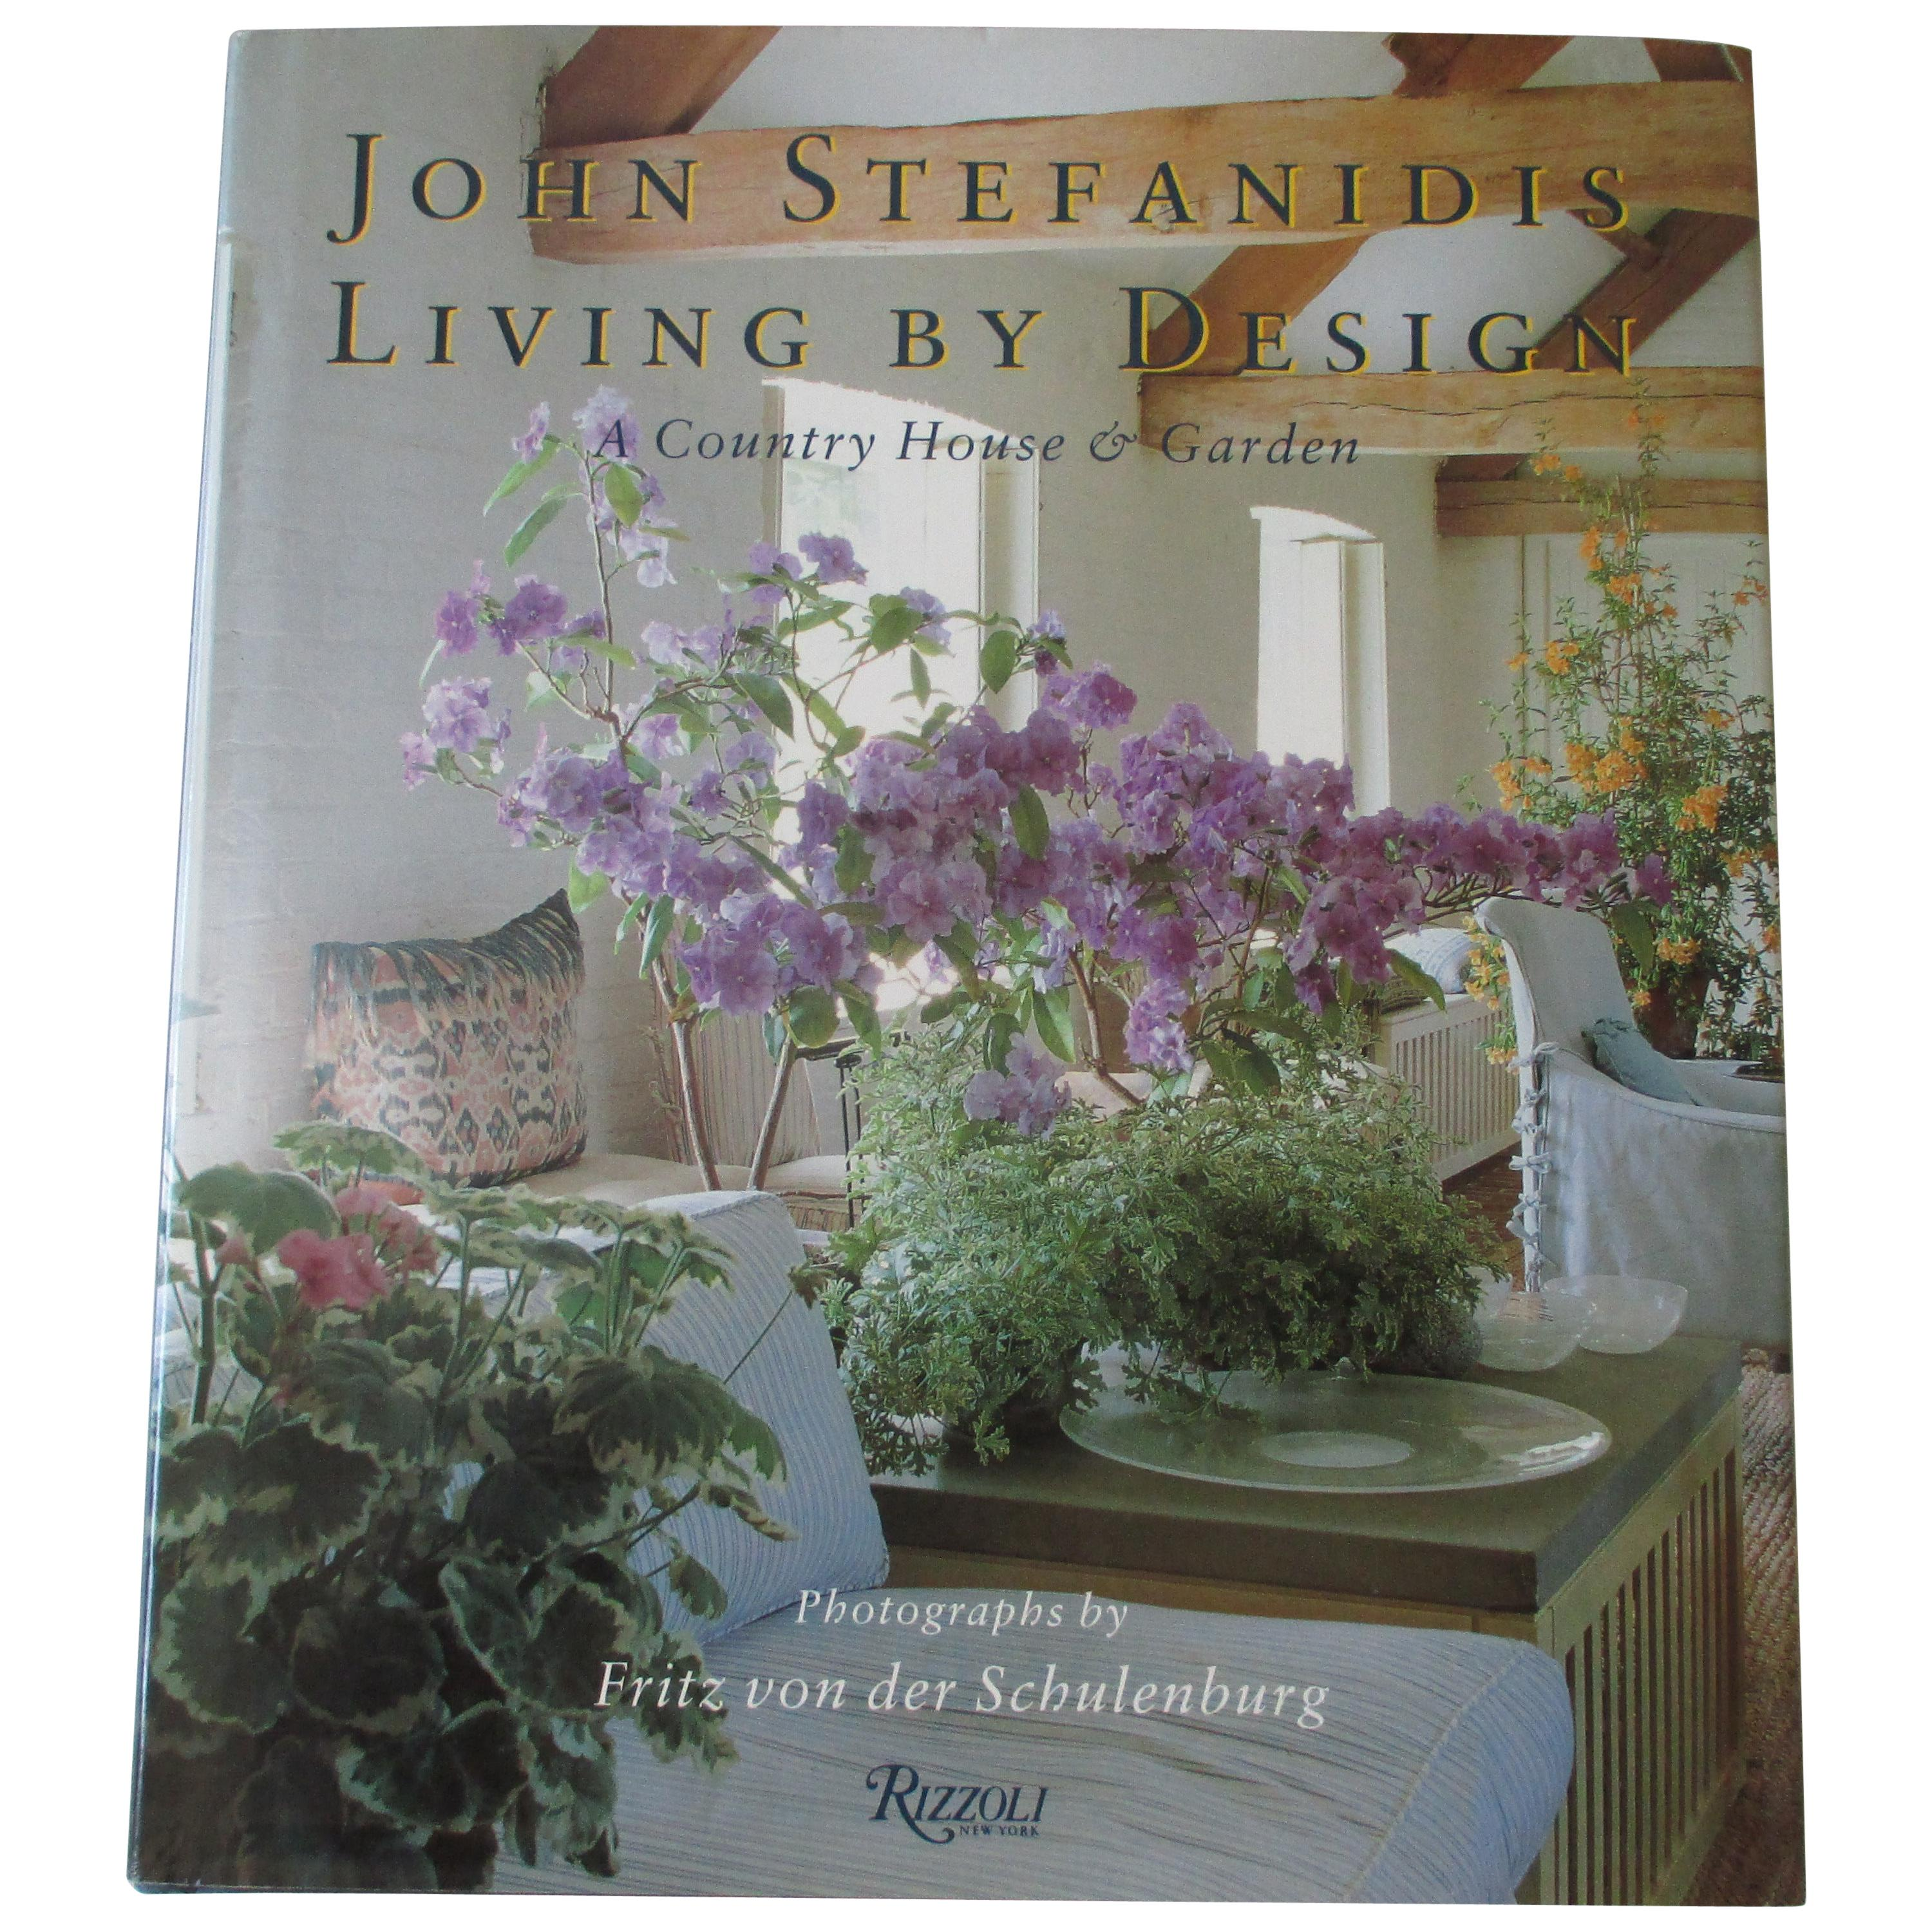 Living by Design Hard Cover Book by J. Stefanidis